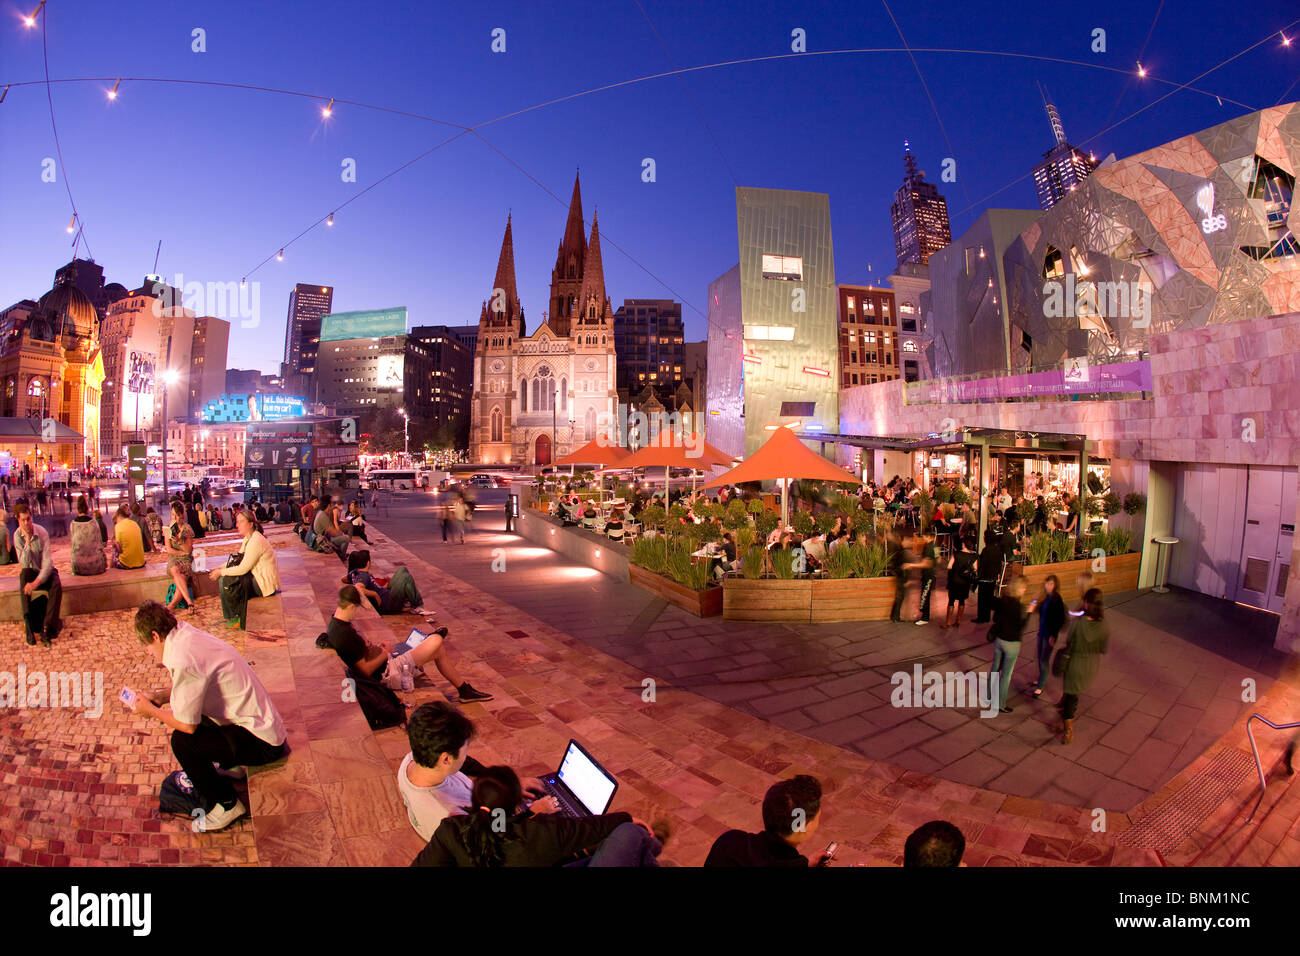 Federation Square, Melbourne Stockbild